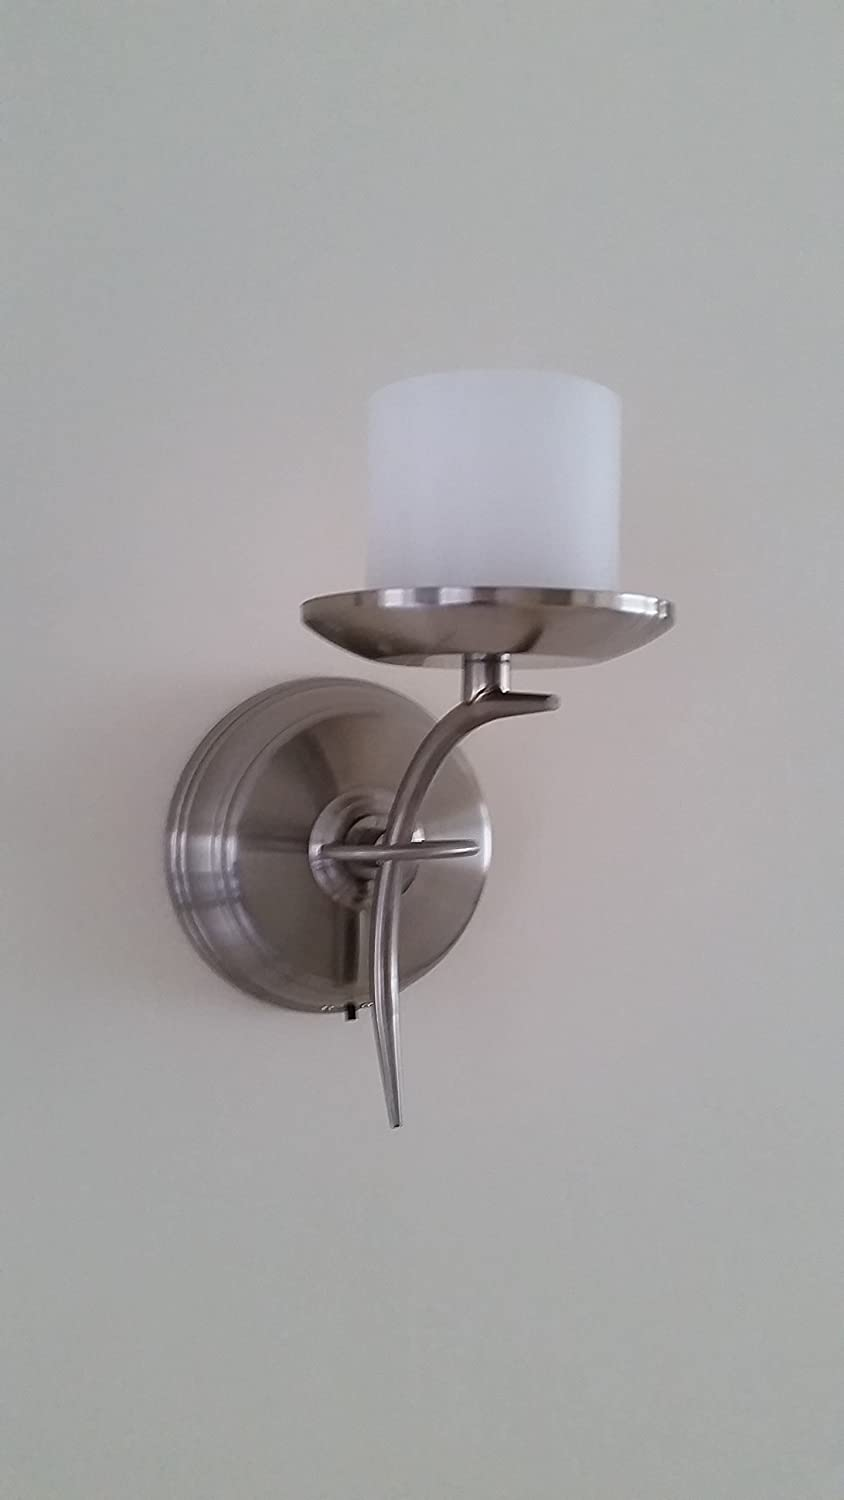 Flameless Candle Wall Sconce - Pewter - Battery Operated Candle Impressions 0523